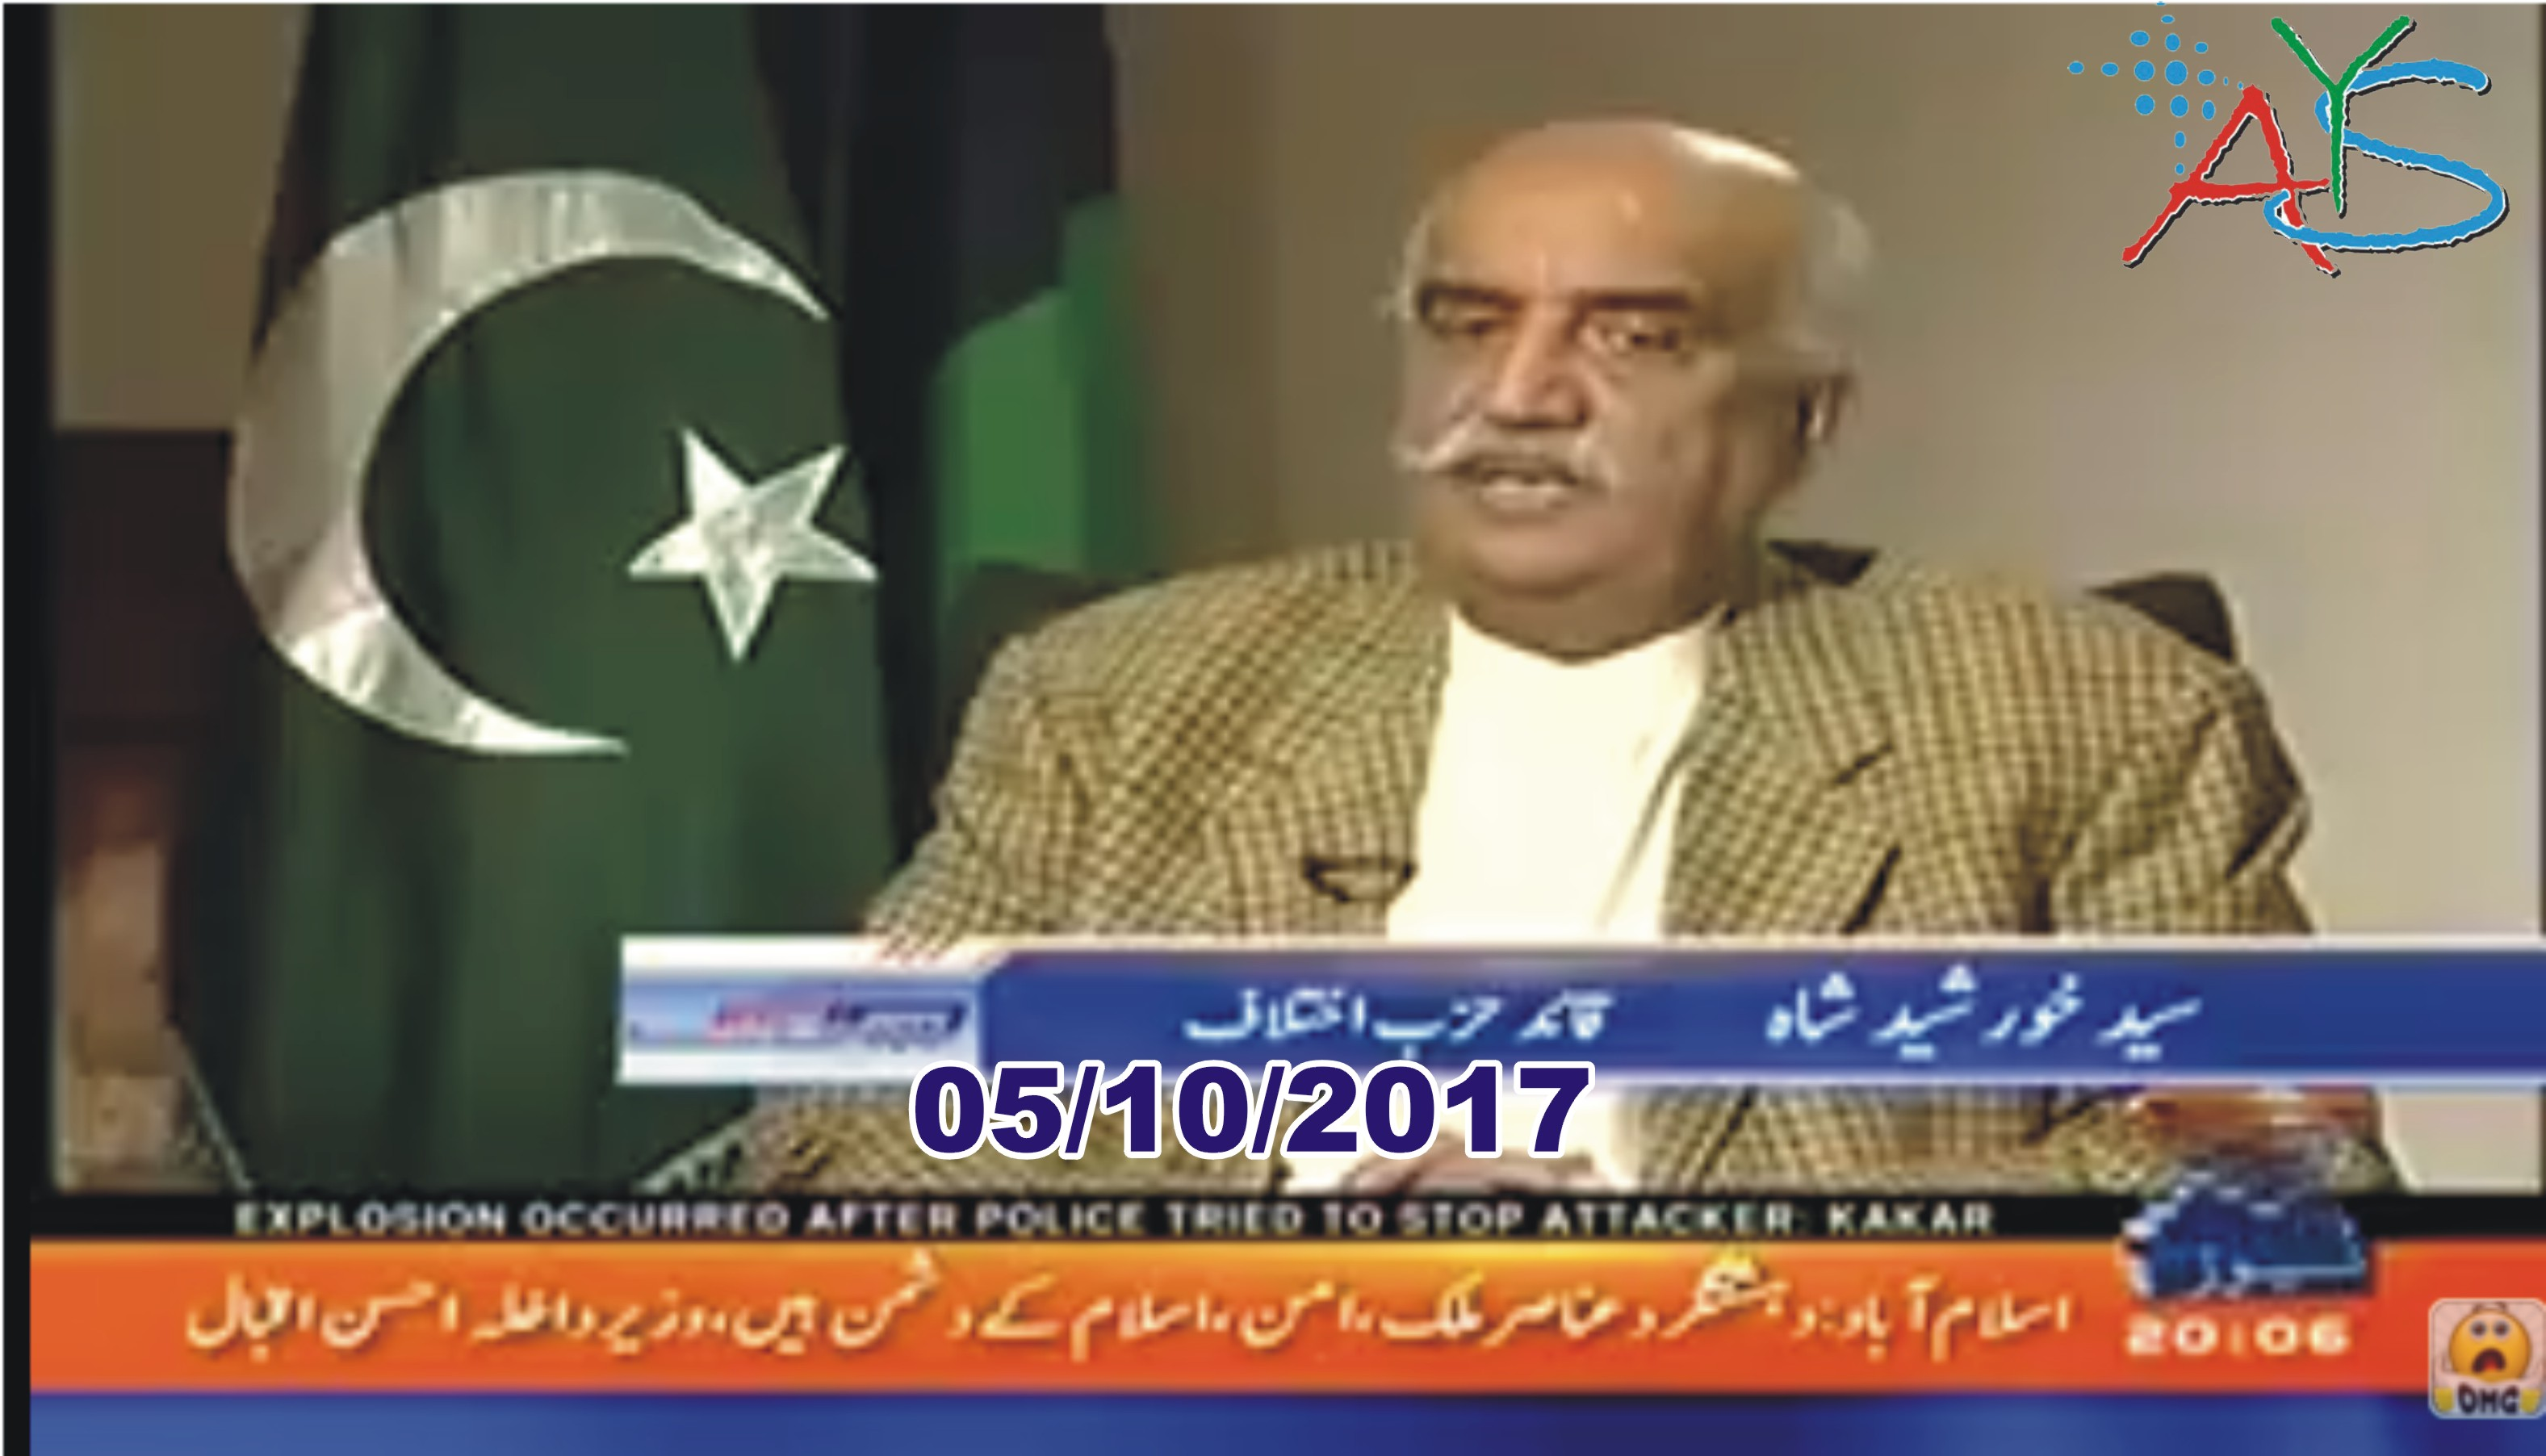 05 Oct 2017 - Khursheed Shah Interview